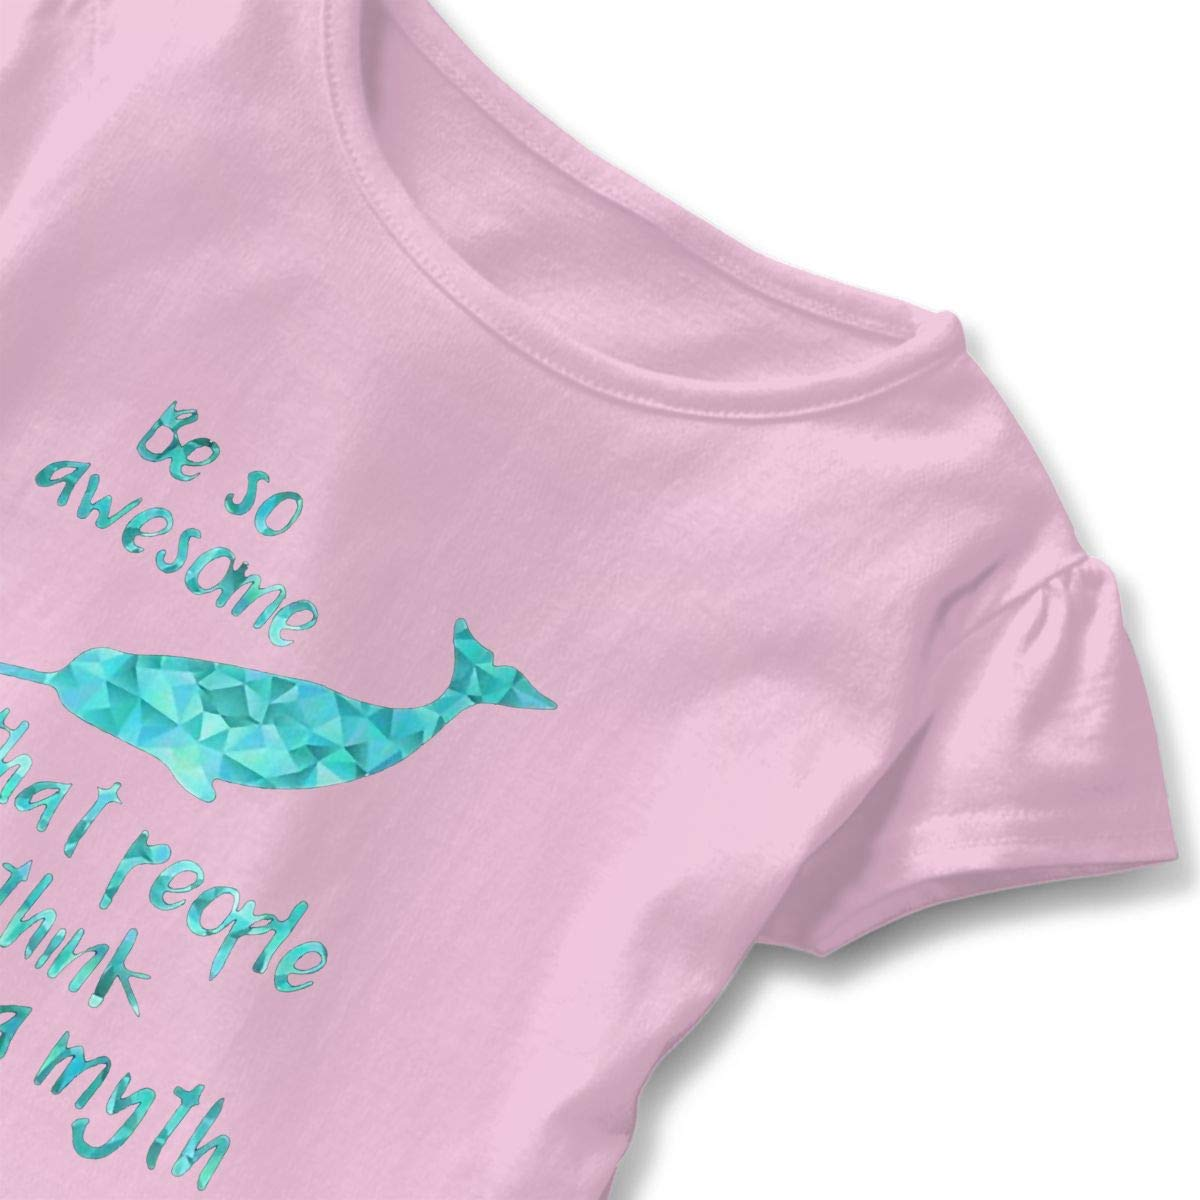 Low Poly You Re Myth Premium Narwhal Toddler Baby Girls Short Sleeve ONeck Basic Shirts with Printed Designs in Front for School Birthday Party Gifts Ruffles Top Pink